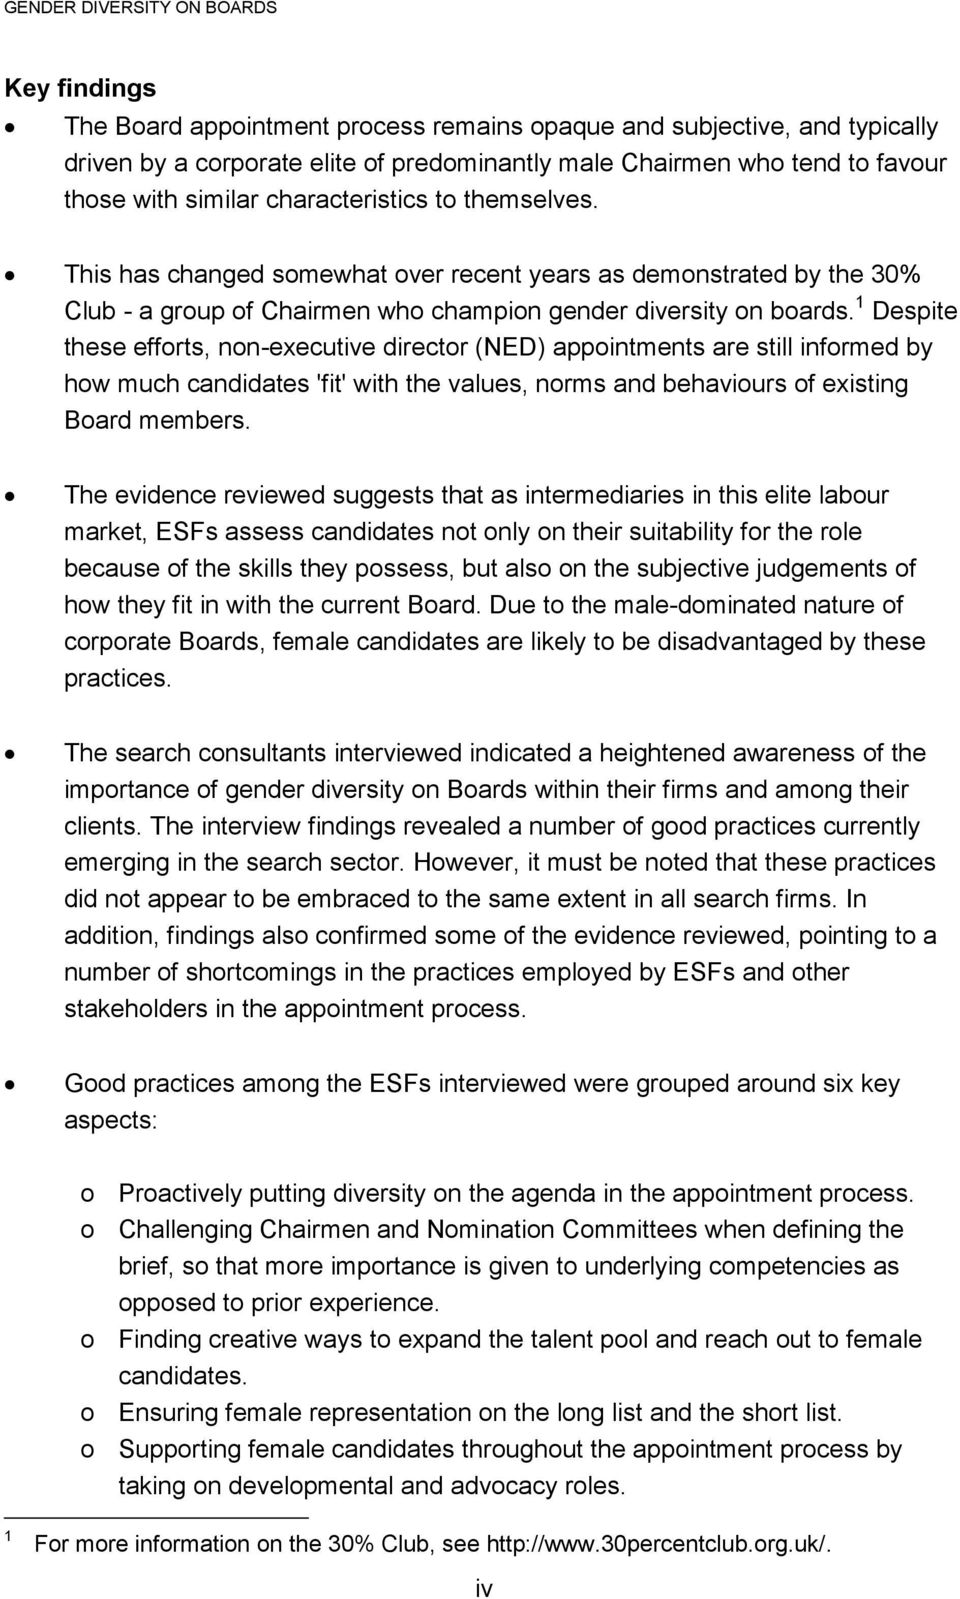 1 Despite these efforts, non-executive director (NED) appointments are still informed by how much candidates 'fit' with the values, norms and behaviours of existing Board members.